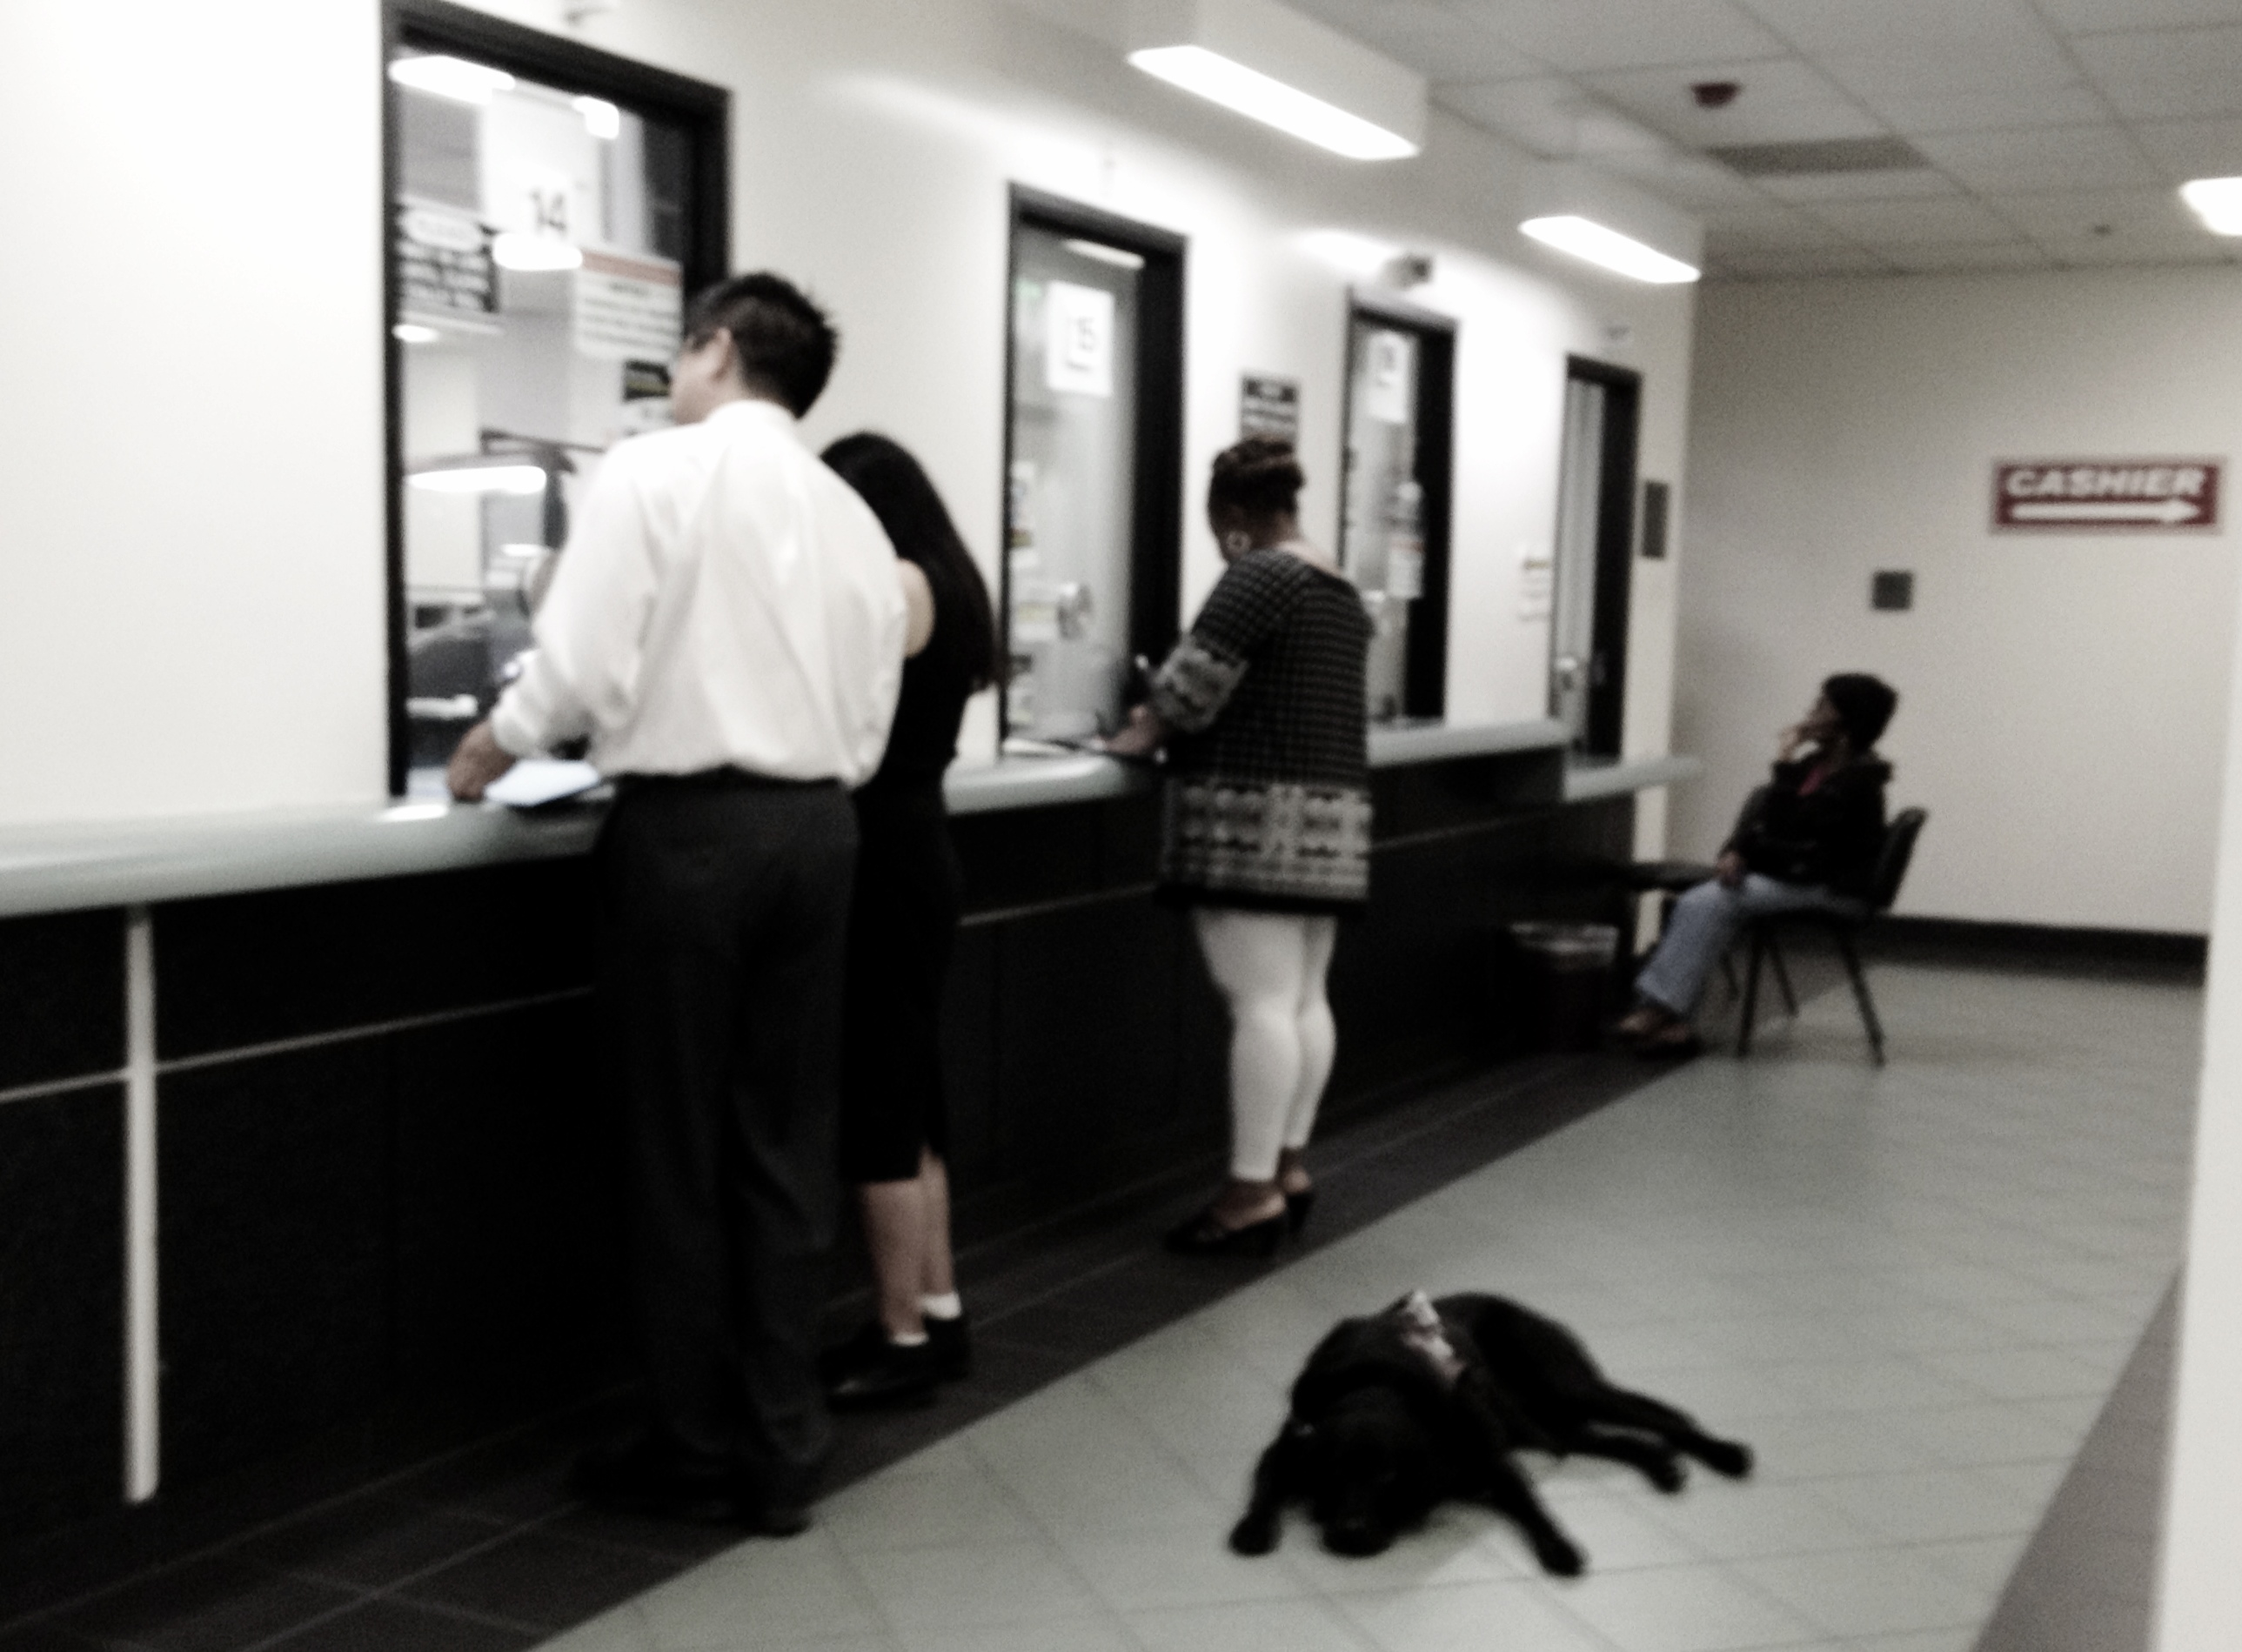 An image taken by our founder while in line at the Los Angeles County Recorder's office to get the LDA license renewed.